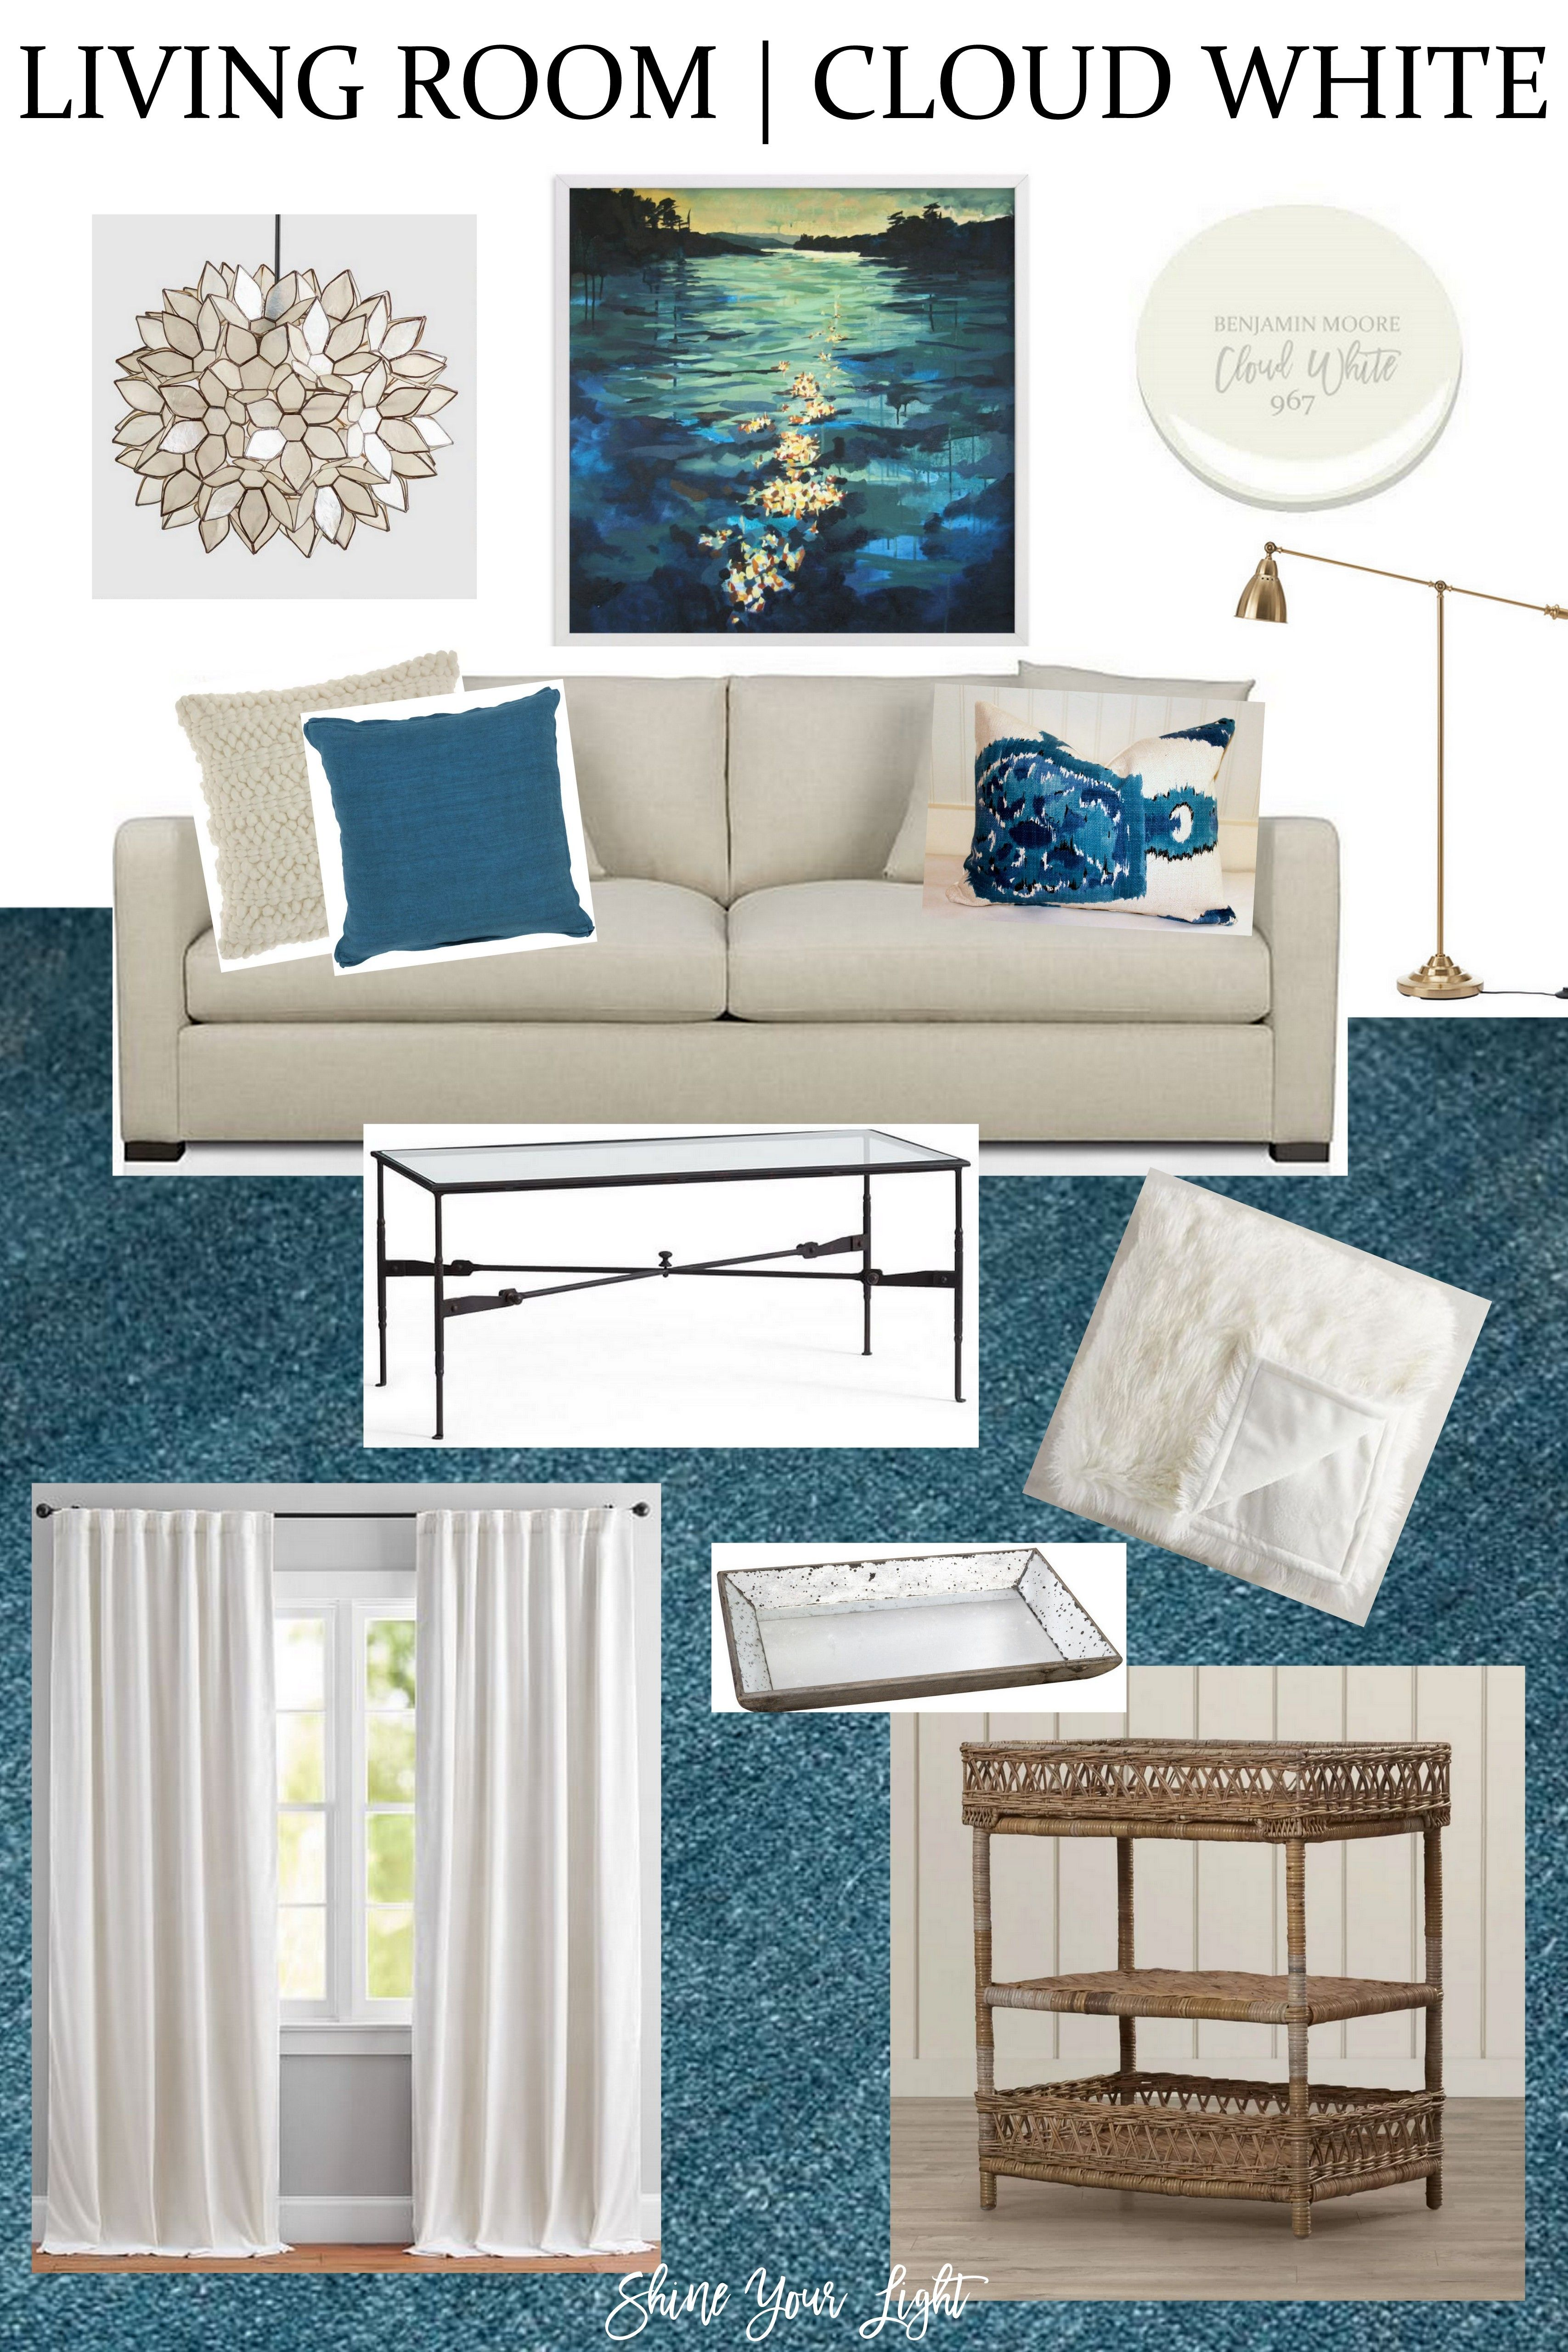 Living Room Design In Cream & Teal | Teal living rooms, Teal and ...